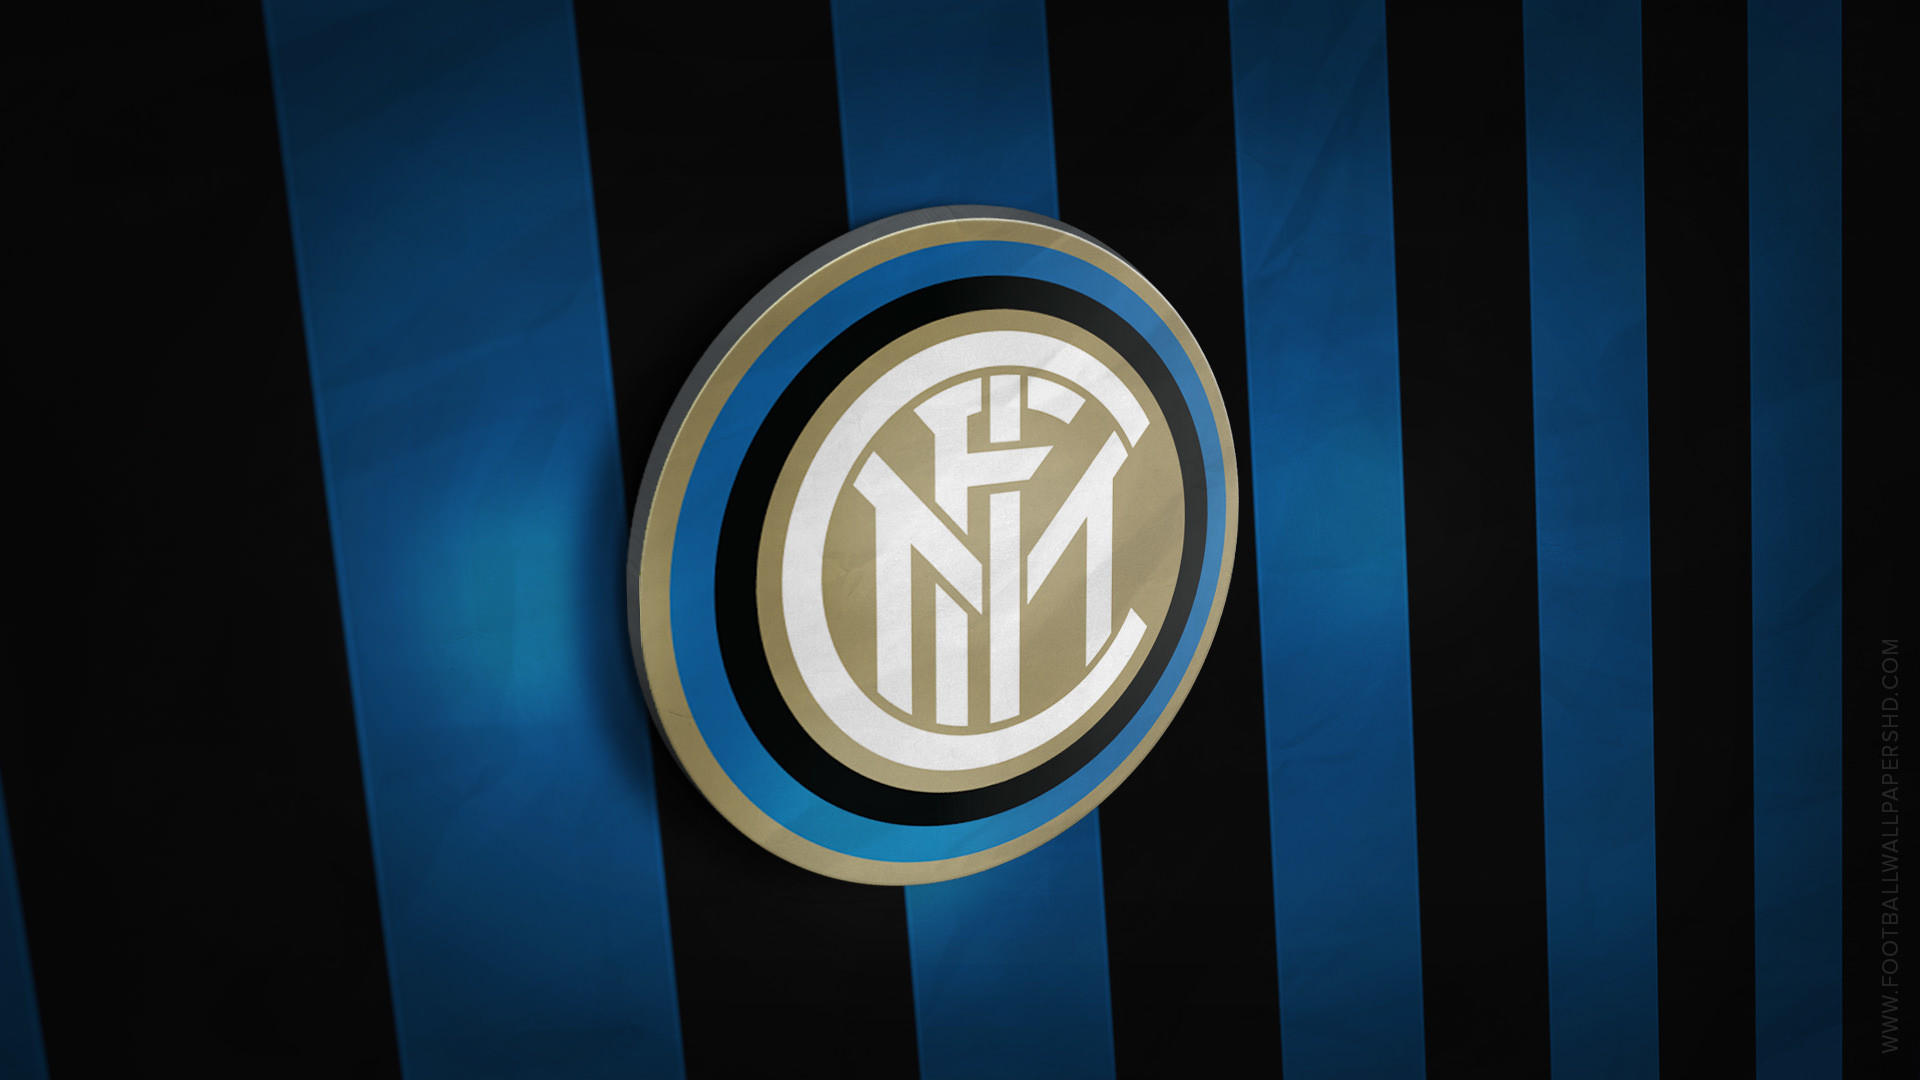 … HD Free Inter Milan Wallpaper Desktop Backgrounds To Download For Free  – We Only Have The Best